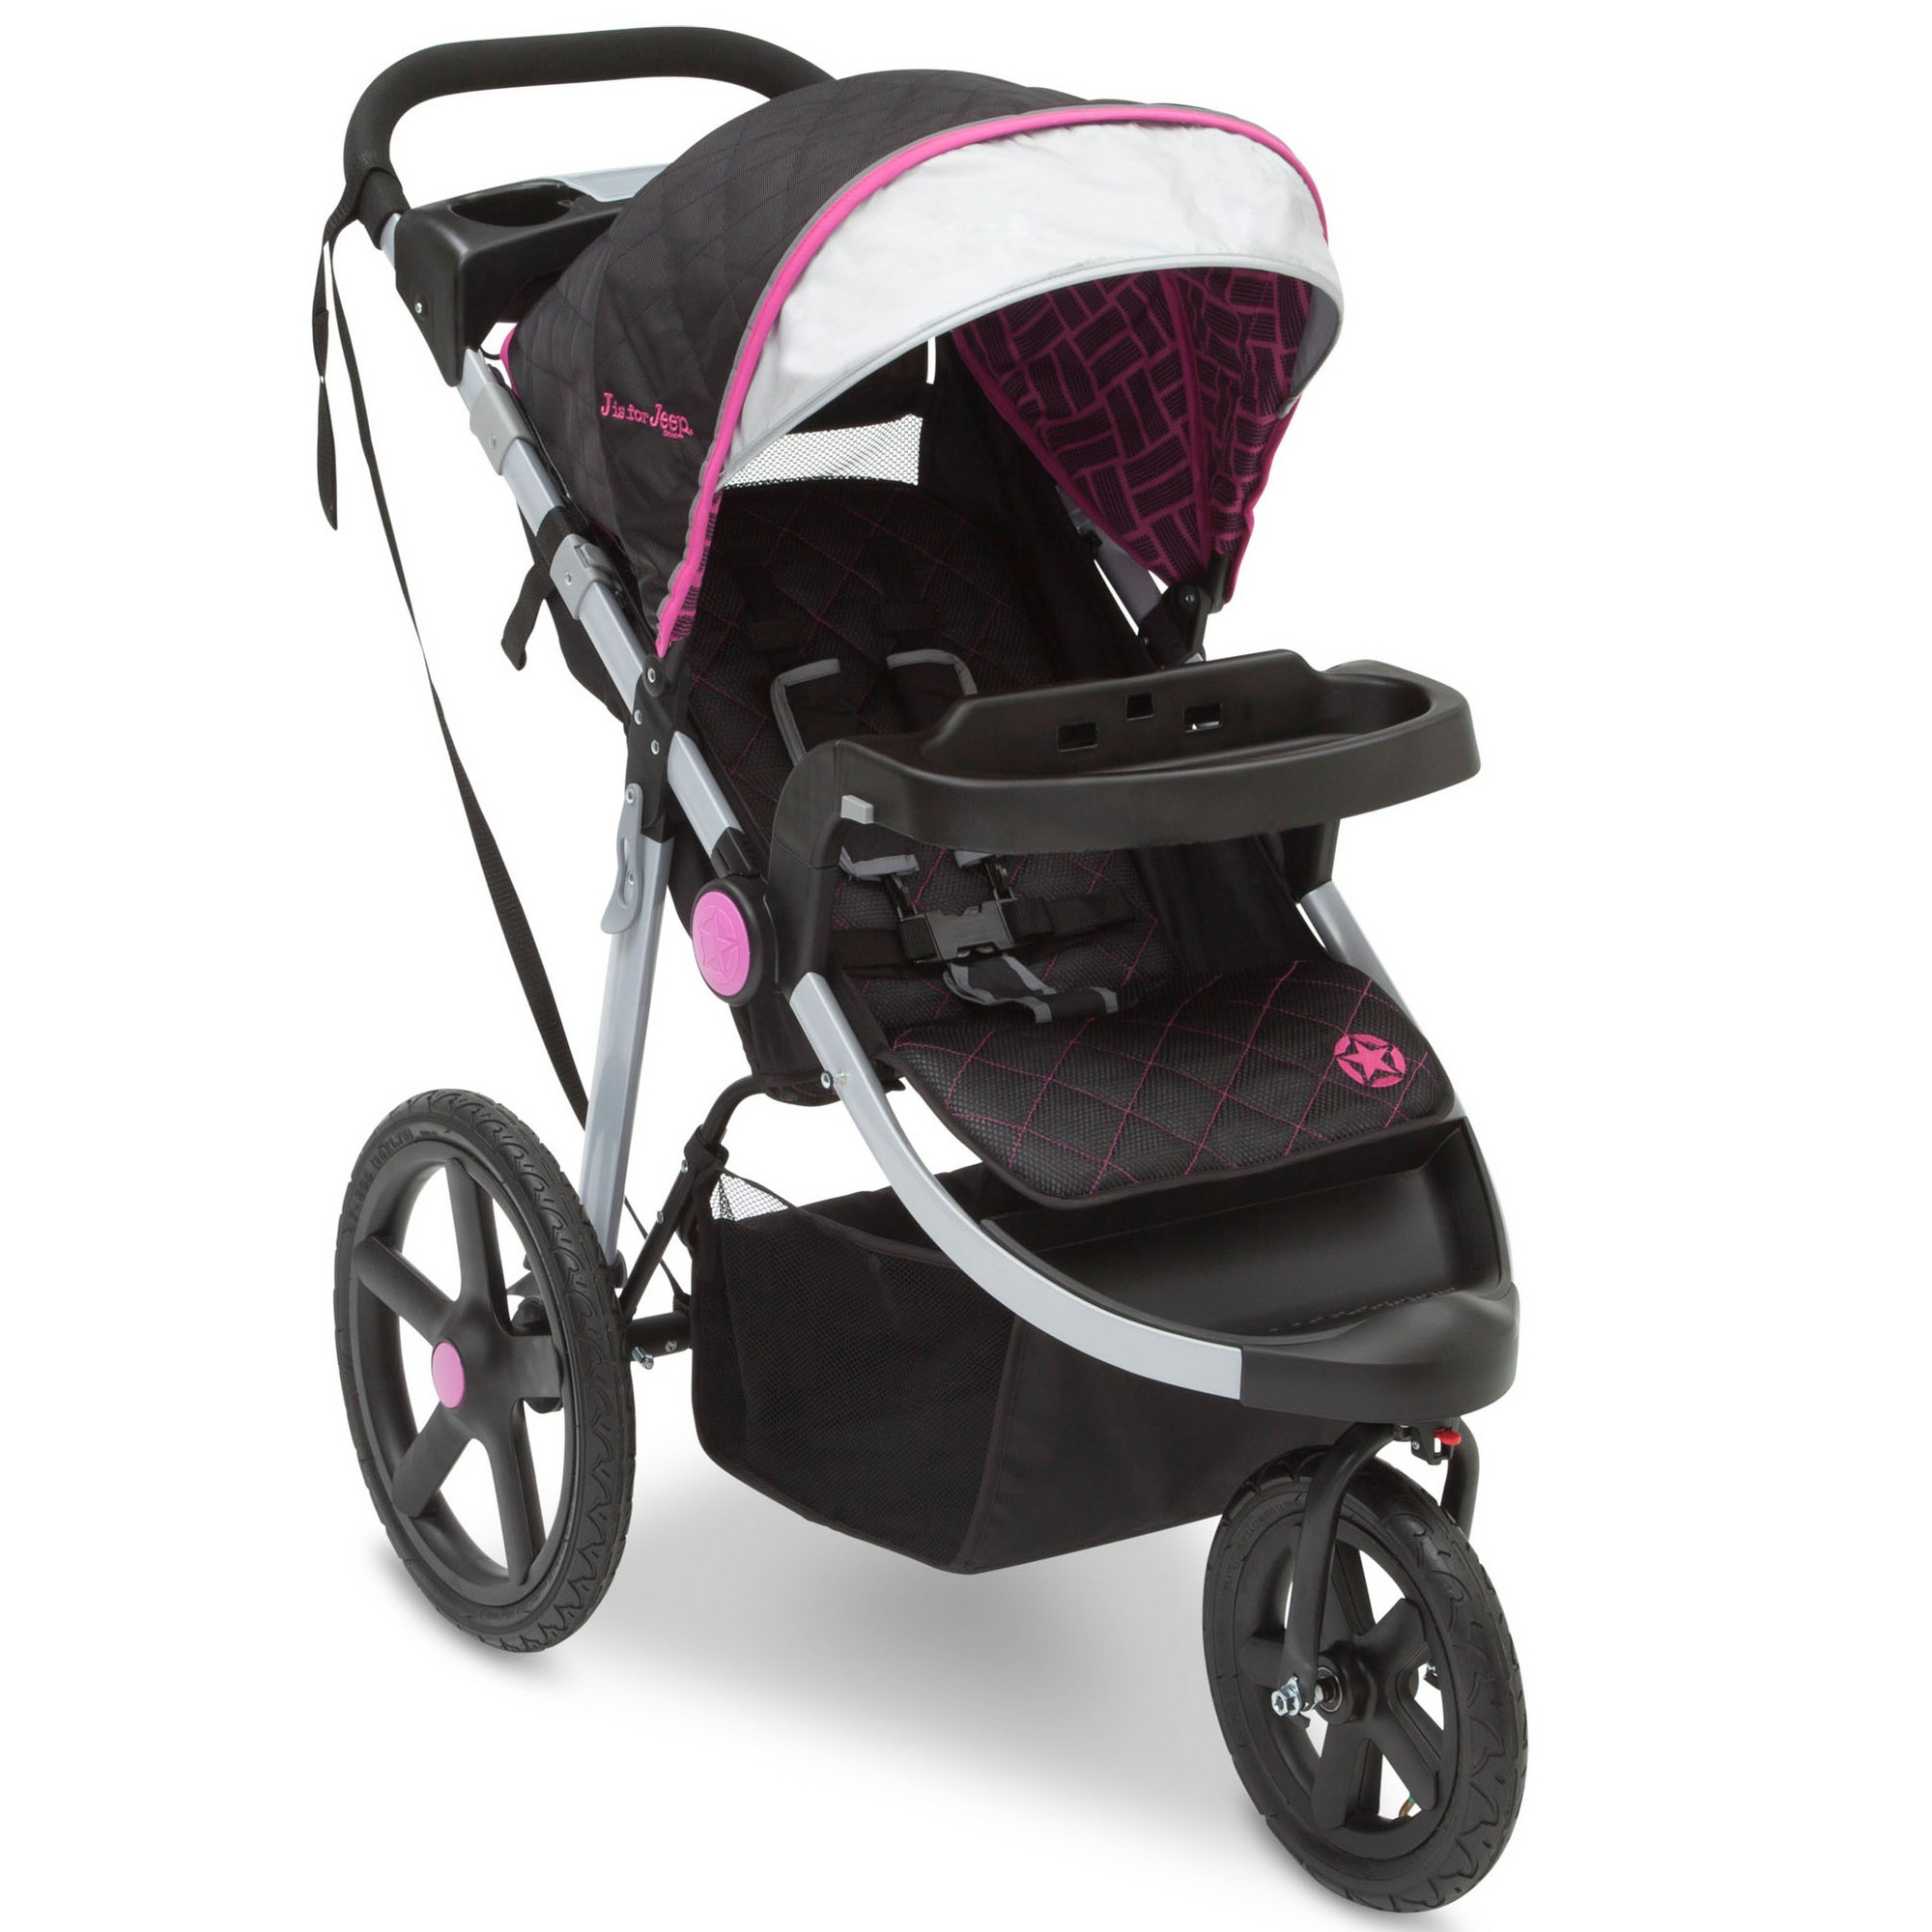 The First Years Jet Stroller Black at Walmart.ca Perfect